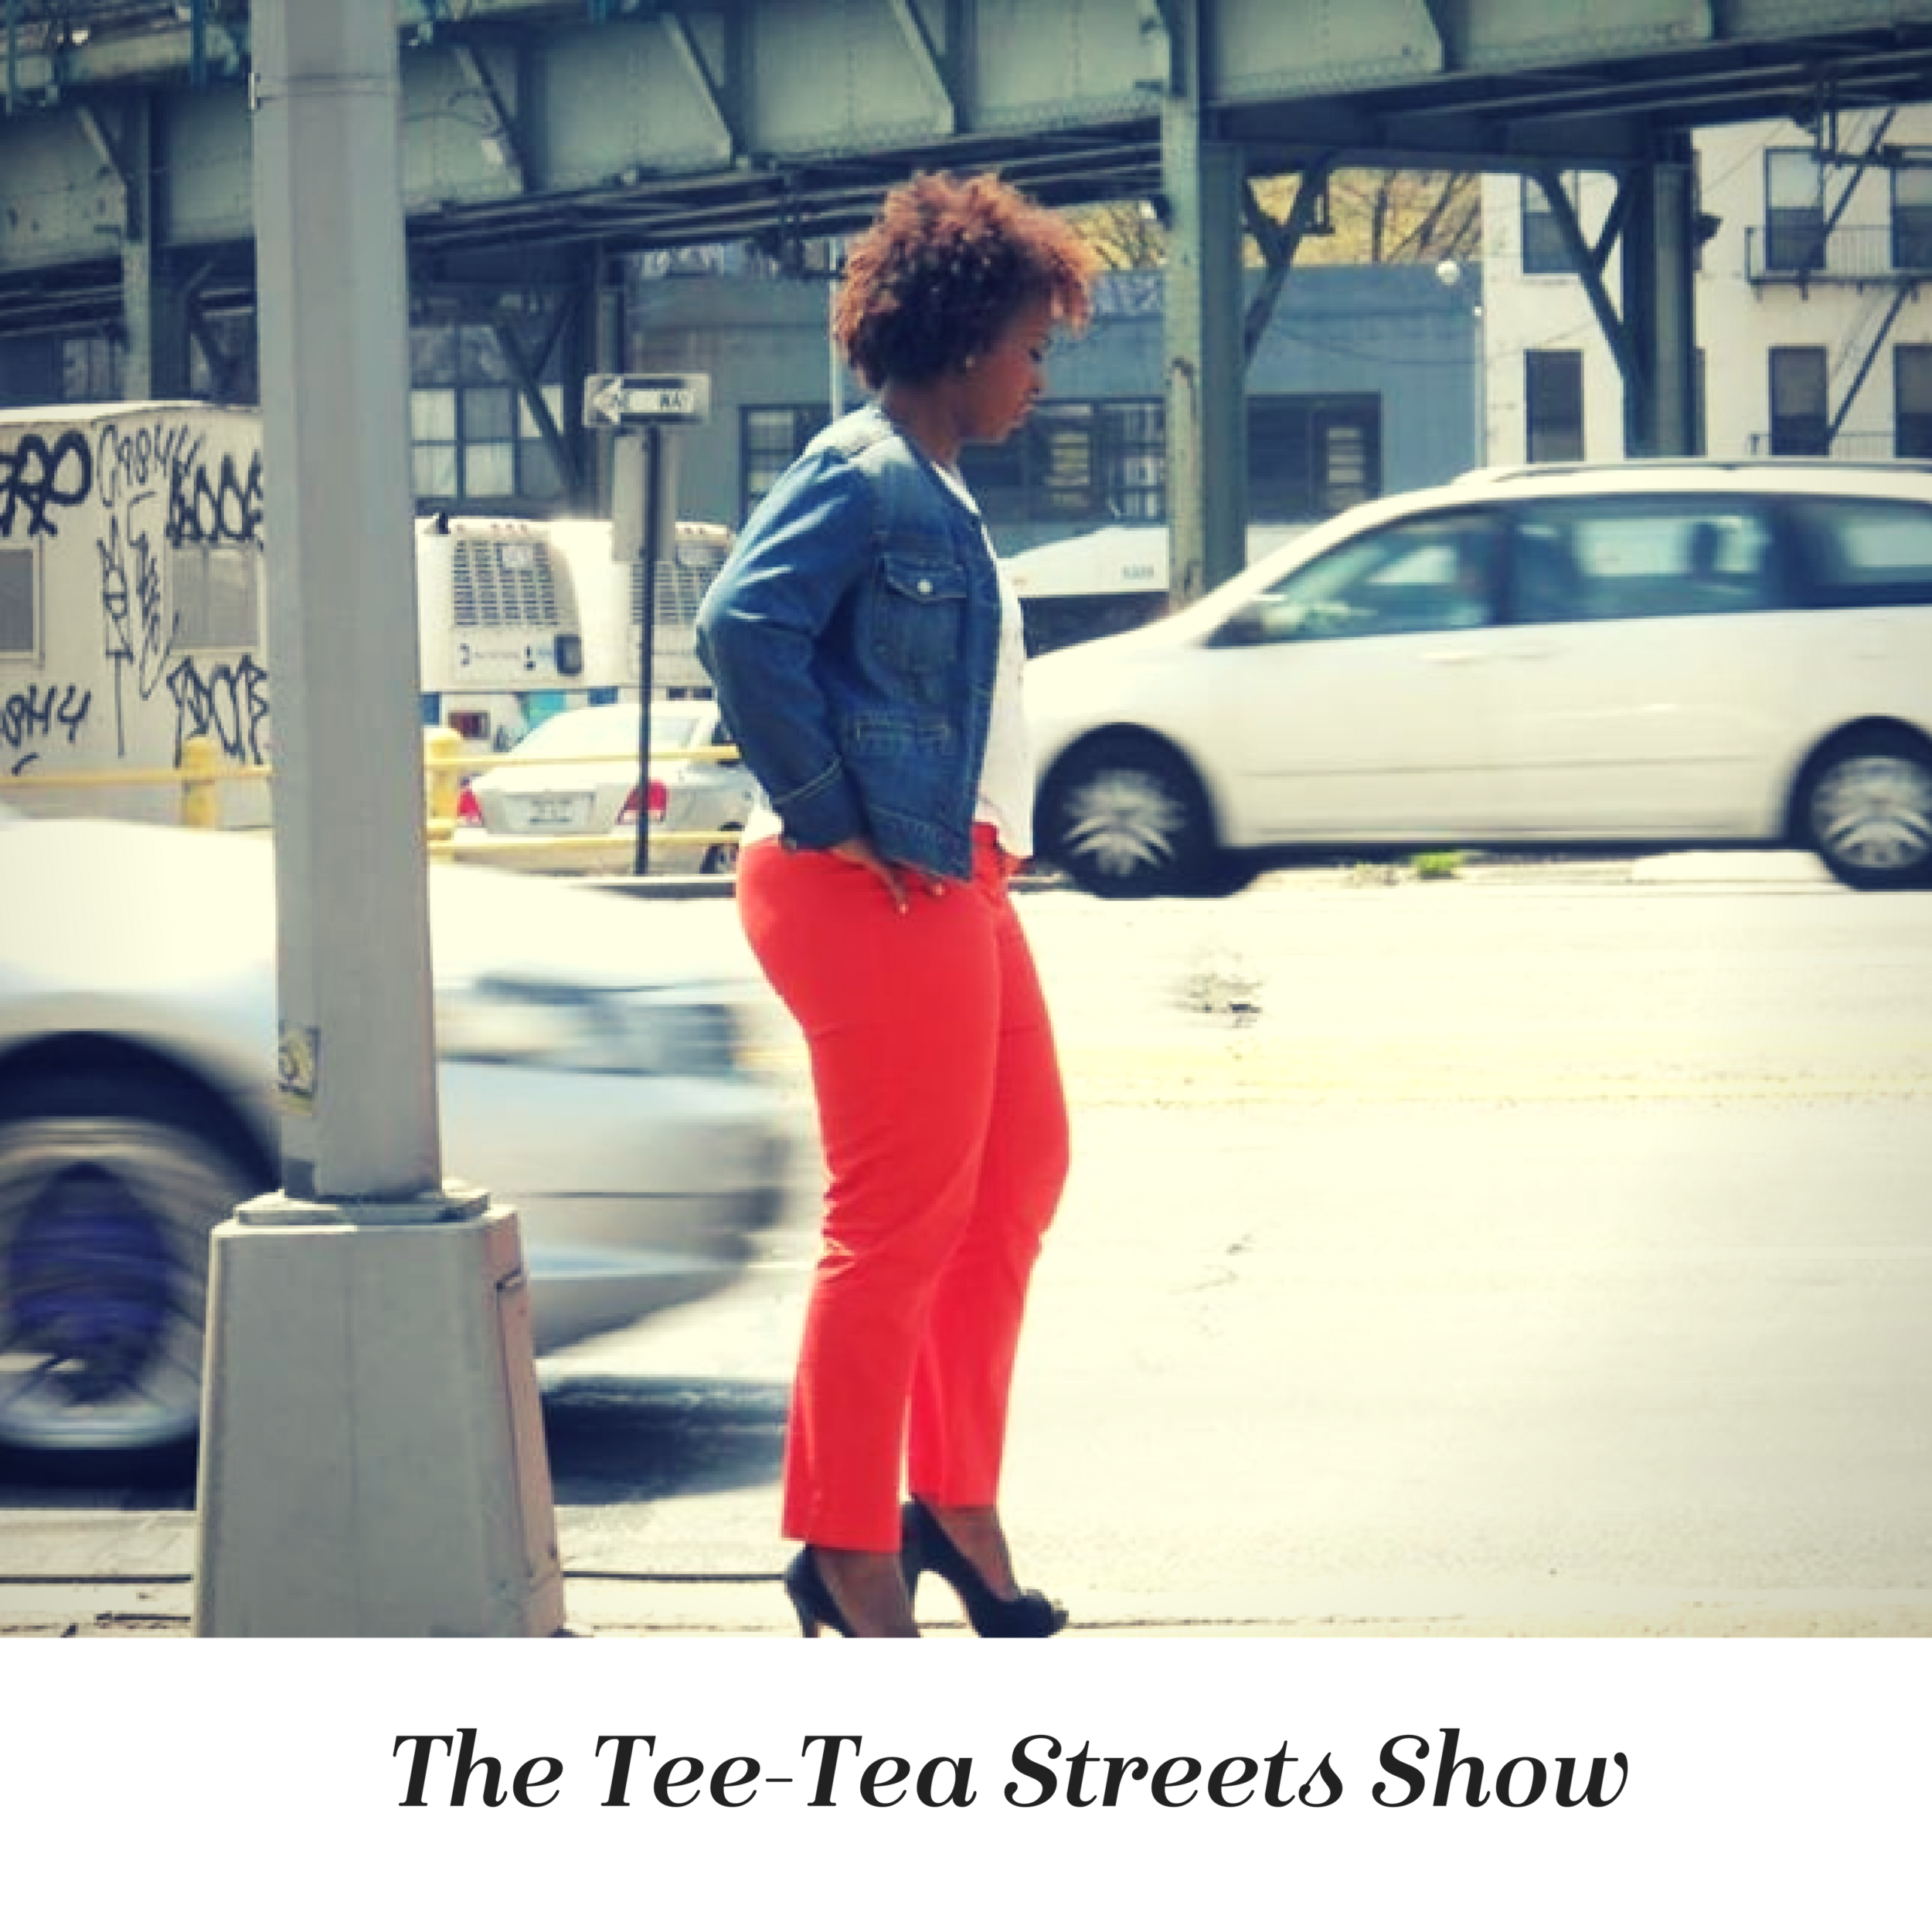 The Tee Tea Streets Show. - A place where entertainment meet motivation!Come and join the ENTER-VATION! OH, Yes it is a word that I have coined.Join me every Monday morning, as we discuss personal development, workplace attire, business tips and of course motivation. I spill the tea on the hottest trending headlines news from Kanye West shennigans to red carpet must haves, and sometimes rants filled with woes. Can't forget spilling the tea on the hottest celebrities. All is filled with love and fun to keep you inspired and ready for the work week ahead.